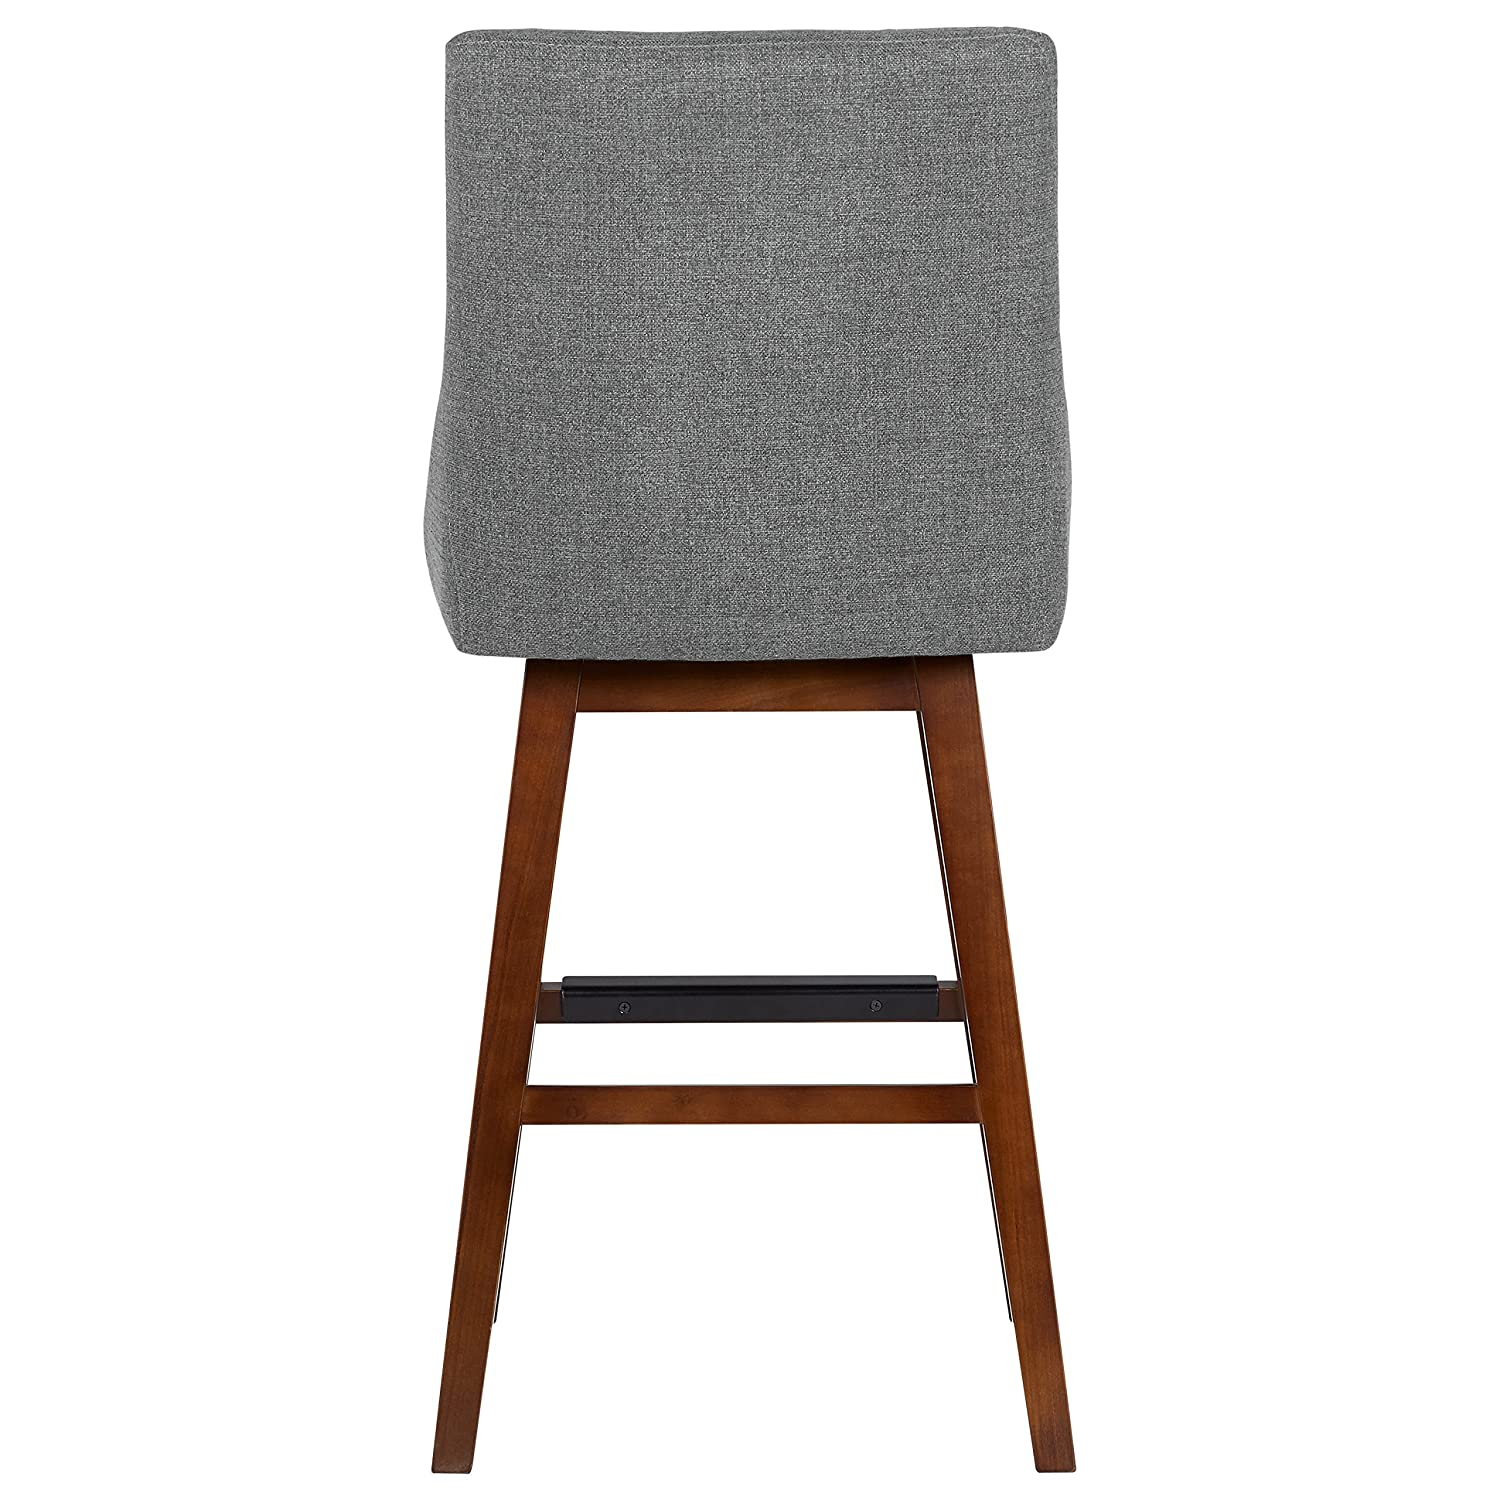 Stone Beam Alaina Modern Swivel Bar Stool, 42.5 H, Grey